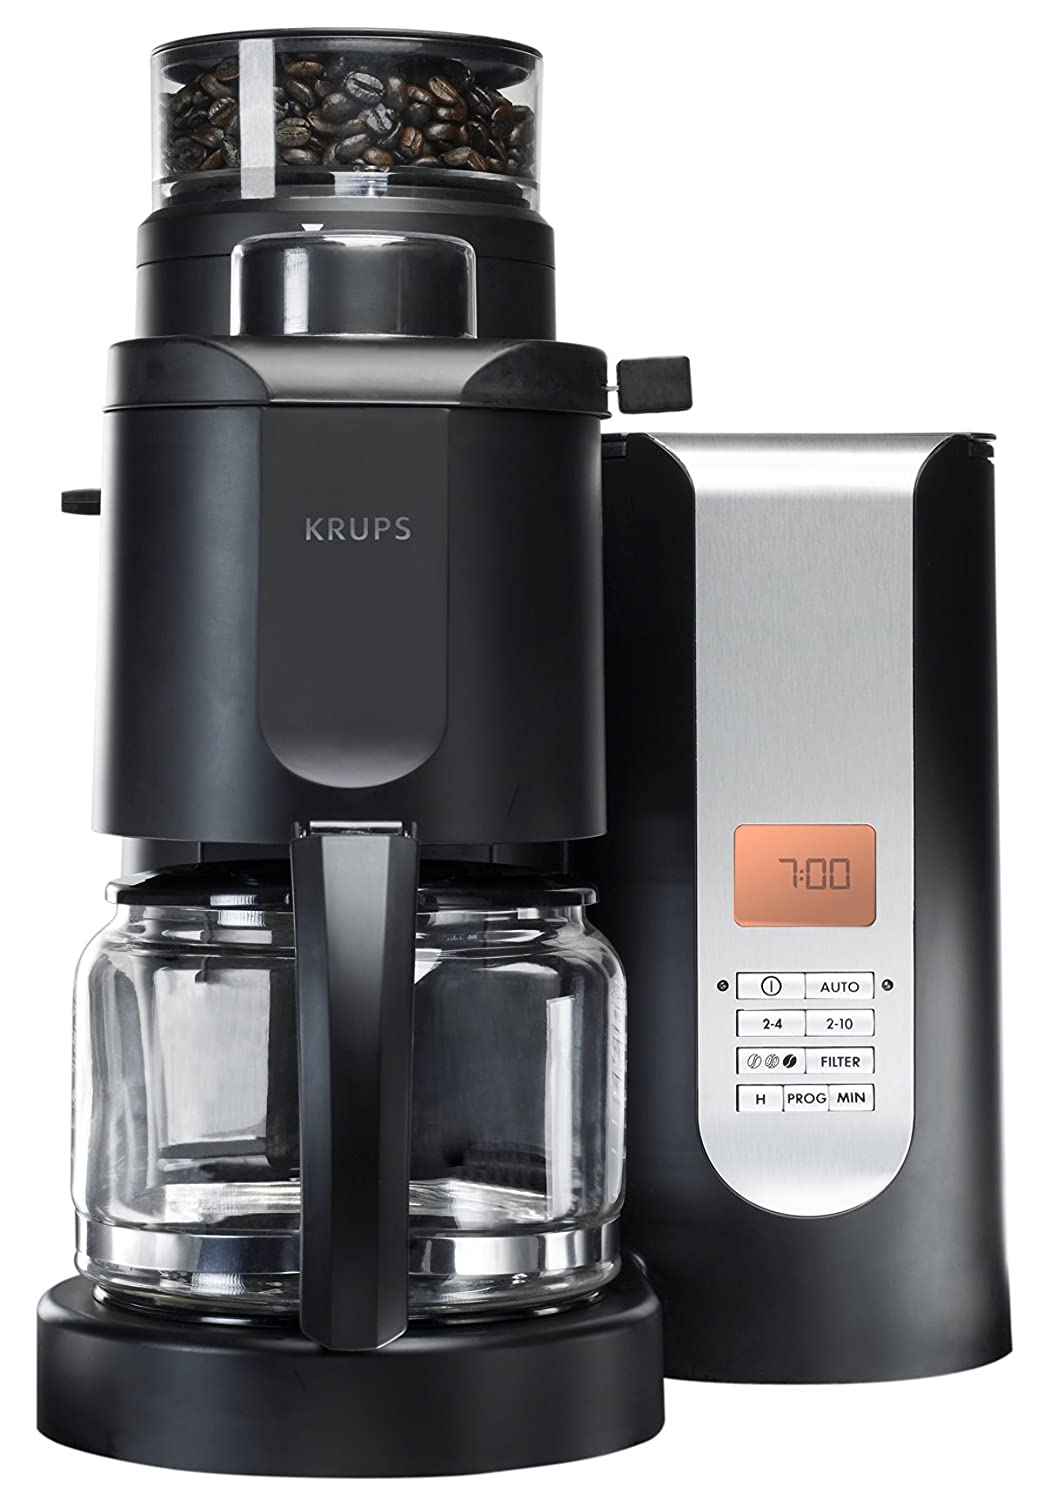 KRUPS KM700552 10-Cup Grind and Brew Coffee Maker